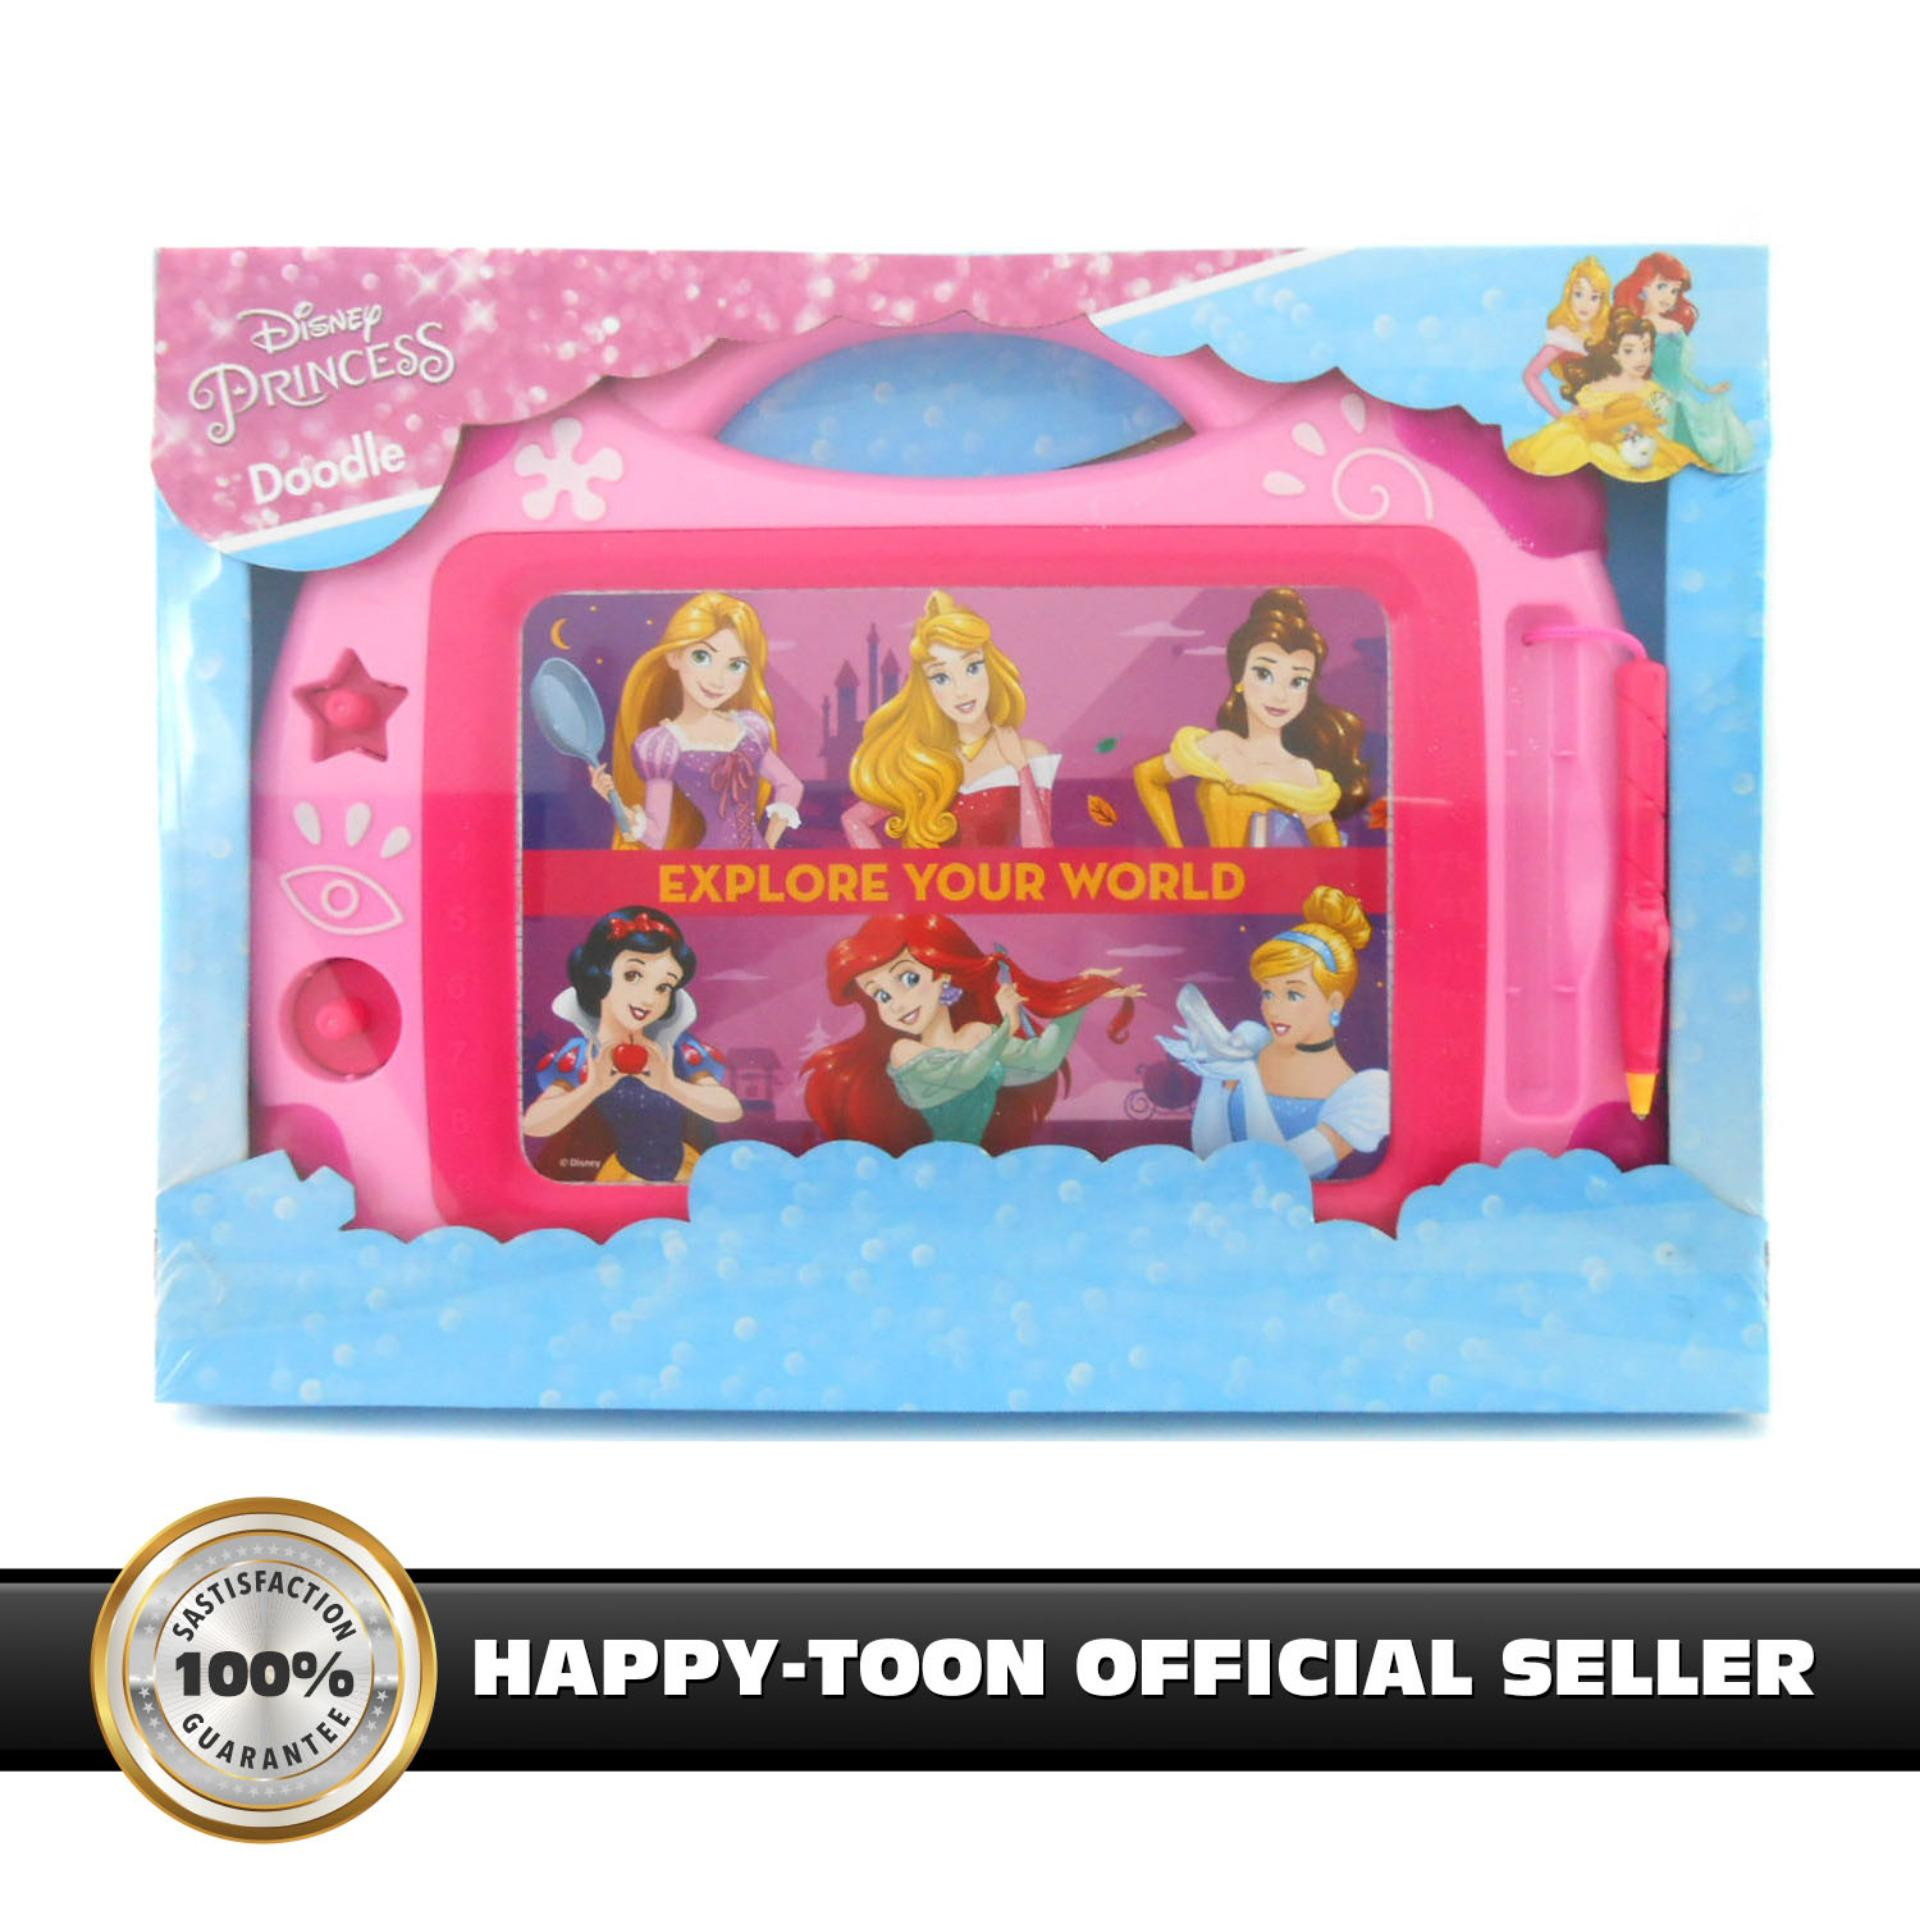 ... Tangan-menghidupkan Rautan Pensil Manual Memotong. IDR 109,000 IDR109000. View Detail. Happy Toon Disney Princess - Doodle - Tablet Color Series